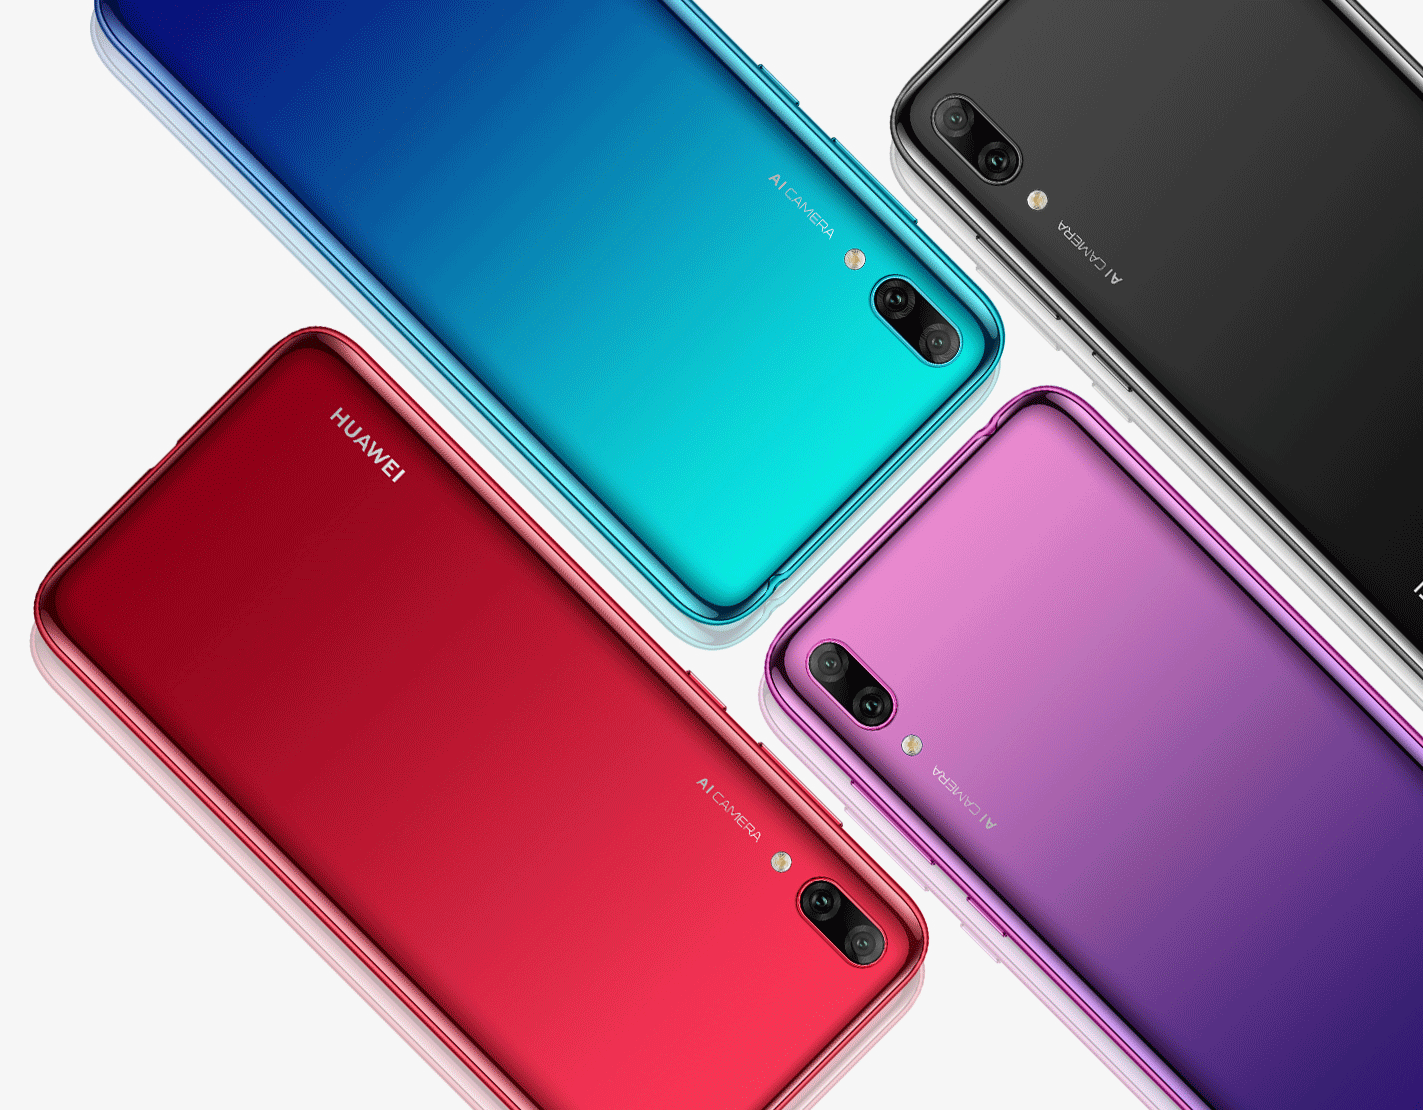 Huawei Enjoy 9 1 1 - Huawei Y7 Prime 2019 specs and price in kenya, Nigeria & Ghana